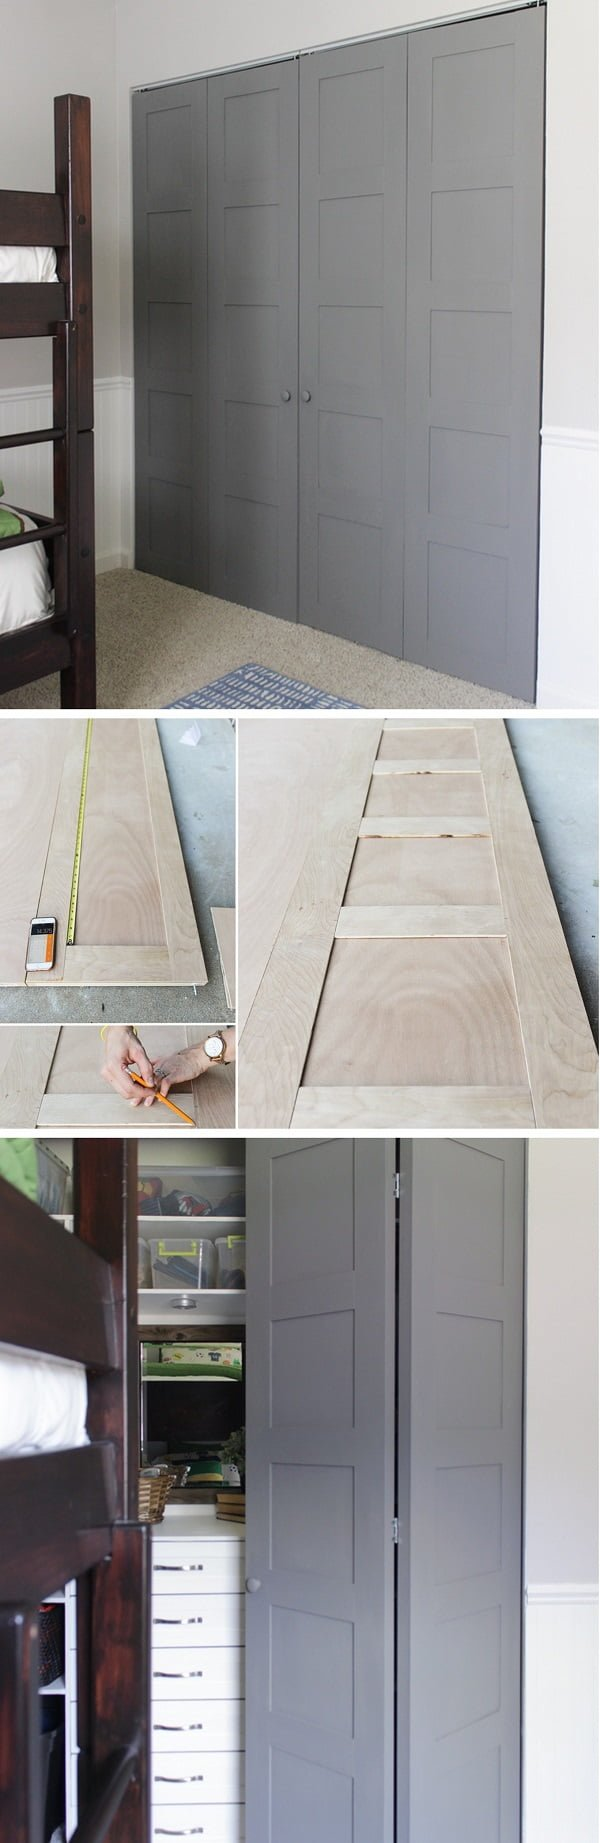 How to make stylish DIY bi-fold closet door